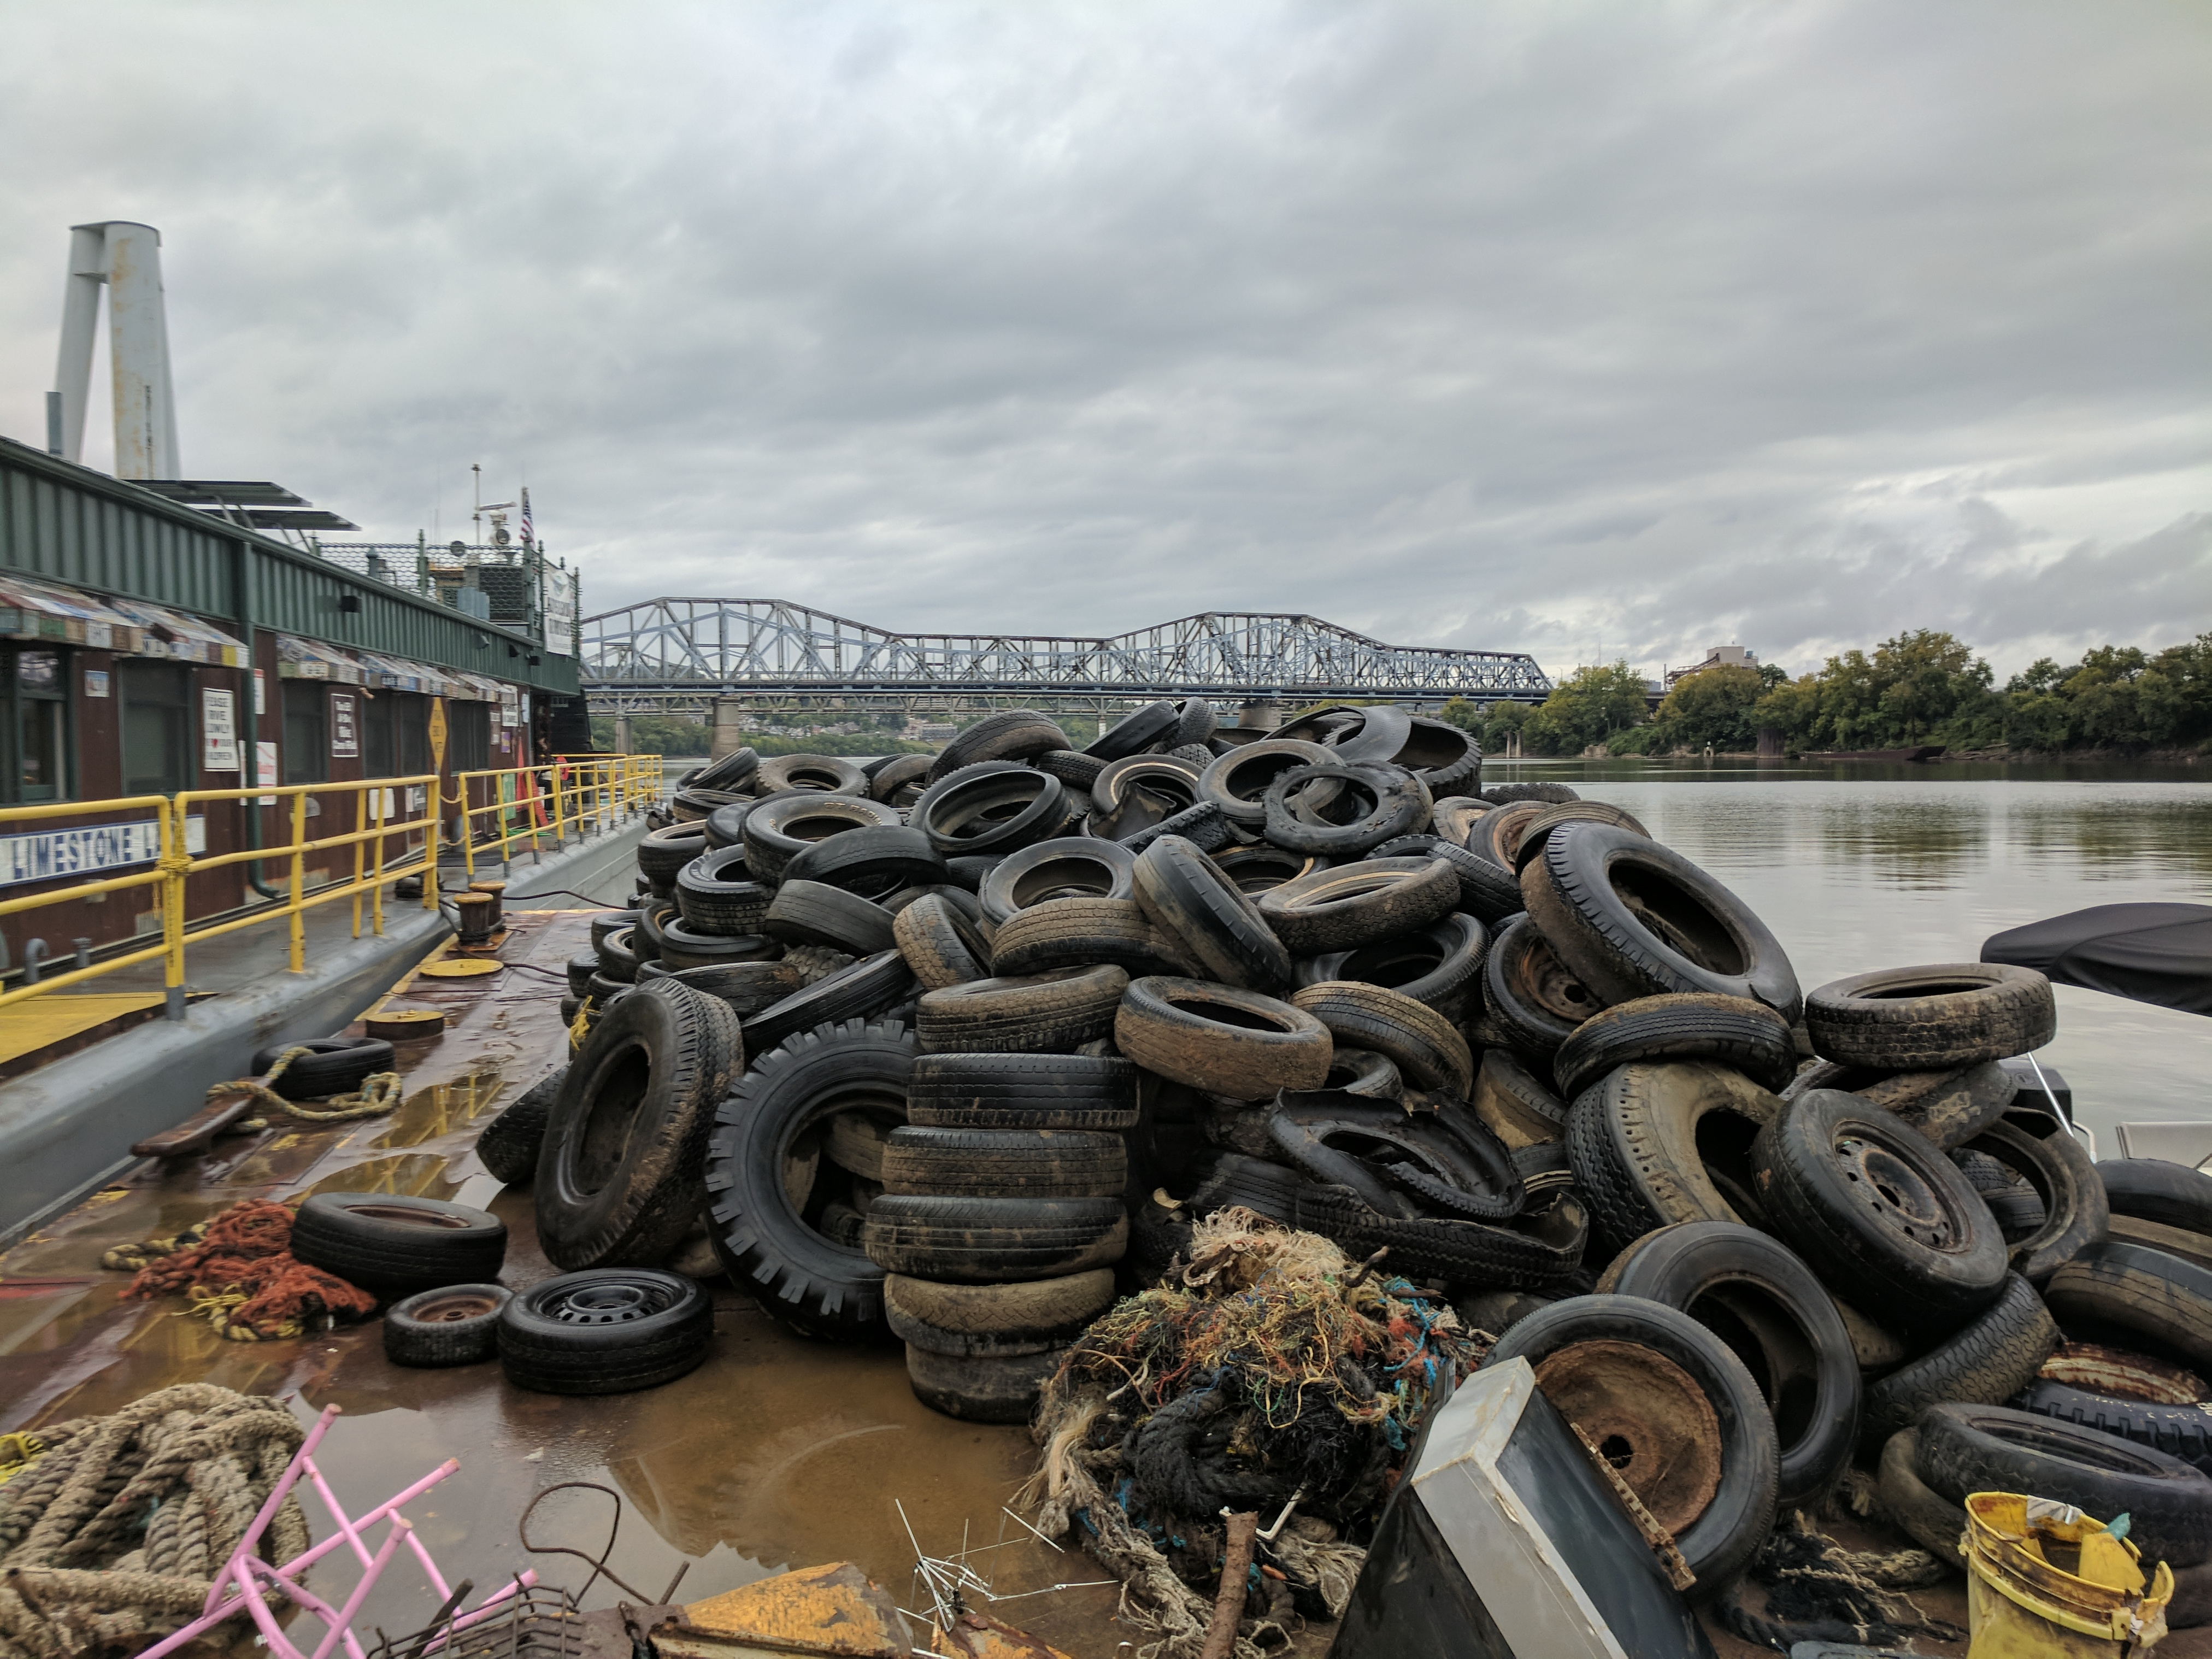 Organizations Work to Reuse 2,500 Pounds of Scrap From Ohio River ...